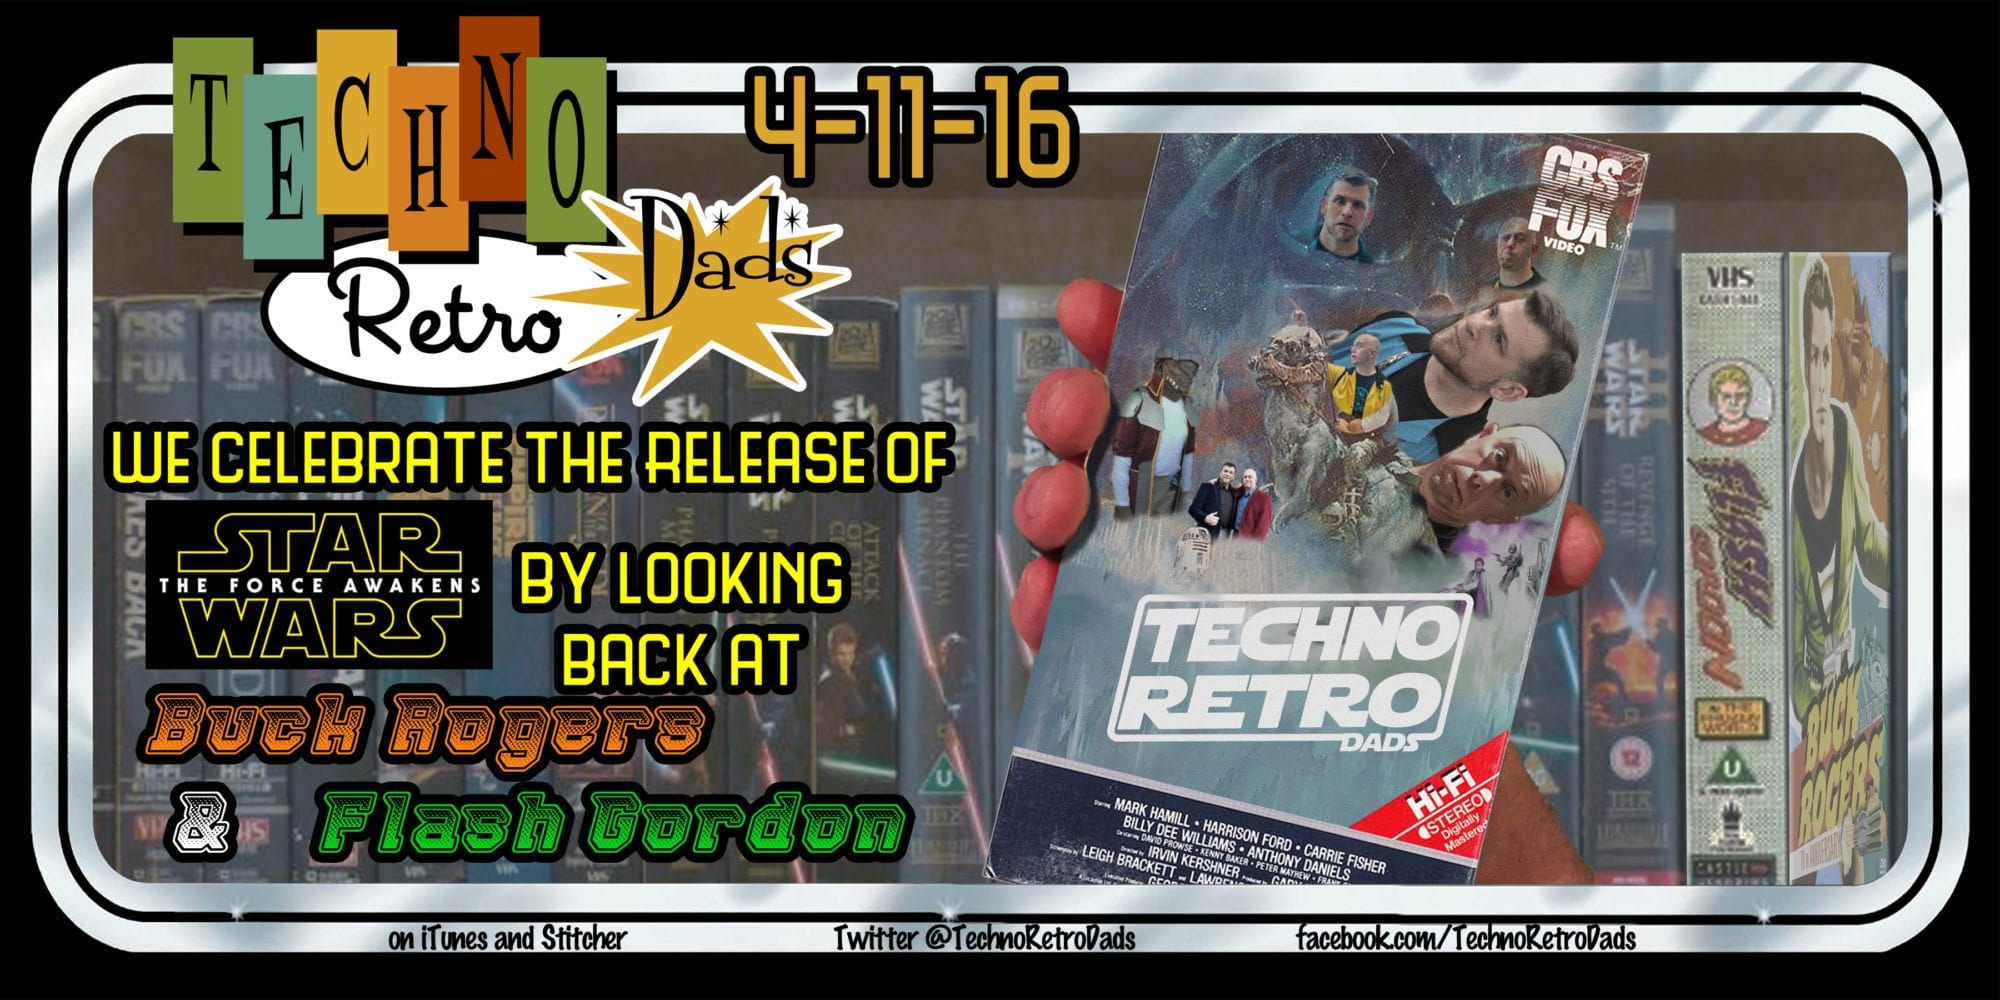 TechnoRetro Dads: The FlashBuck Menace and Home Video Releases